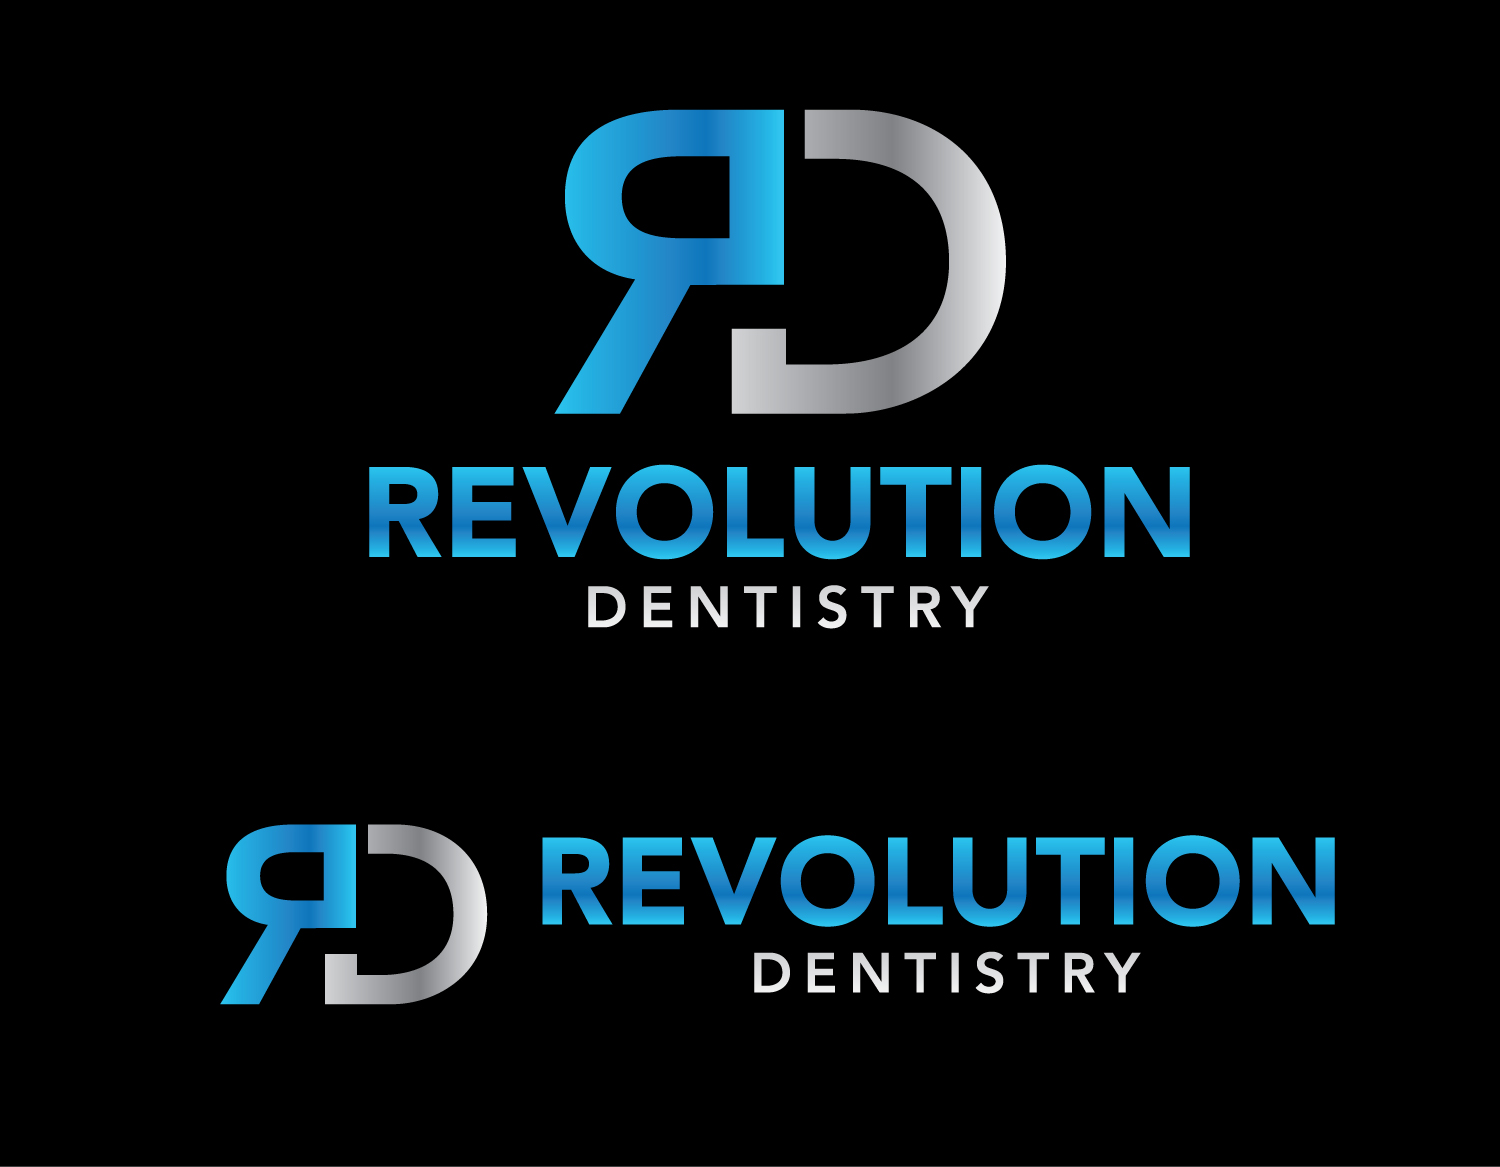 Logo Design by rA - Entry No. 10 in the Logo Design Contest Artistic Logo Design for Revolution Dentistry.